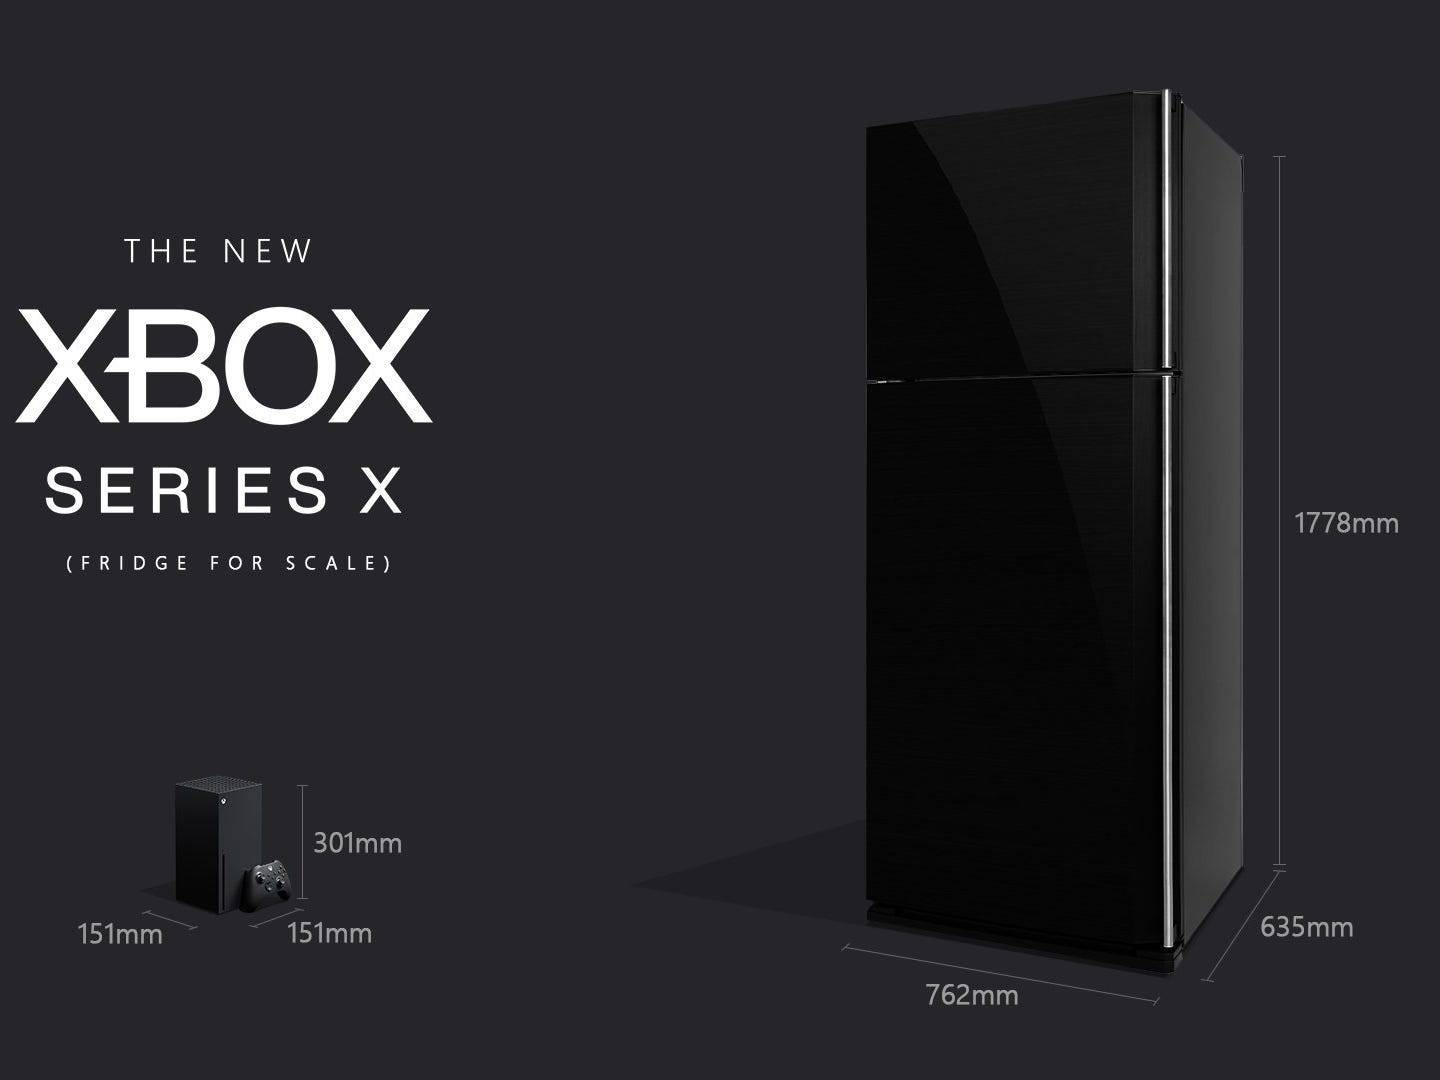 Microsoft Made A Functioning Xbox Series X Refrigerator Business Insider